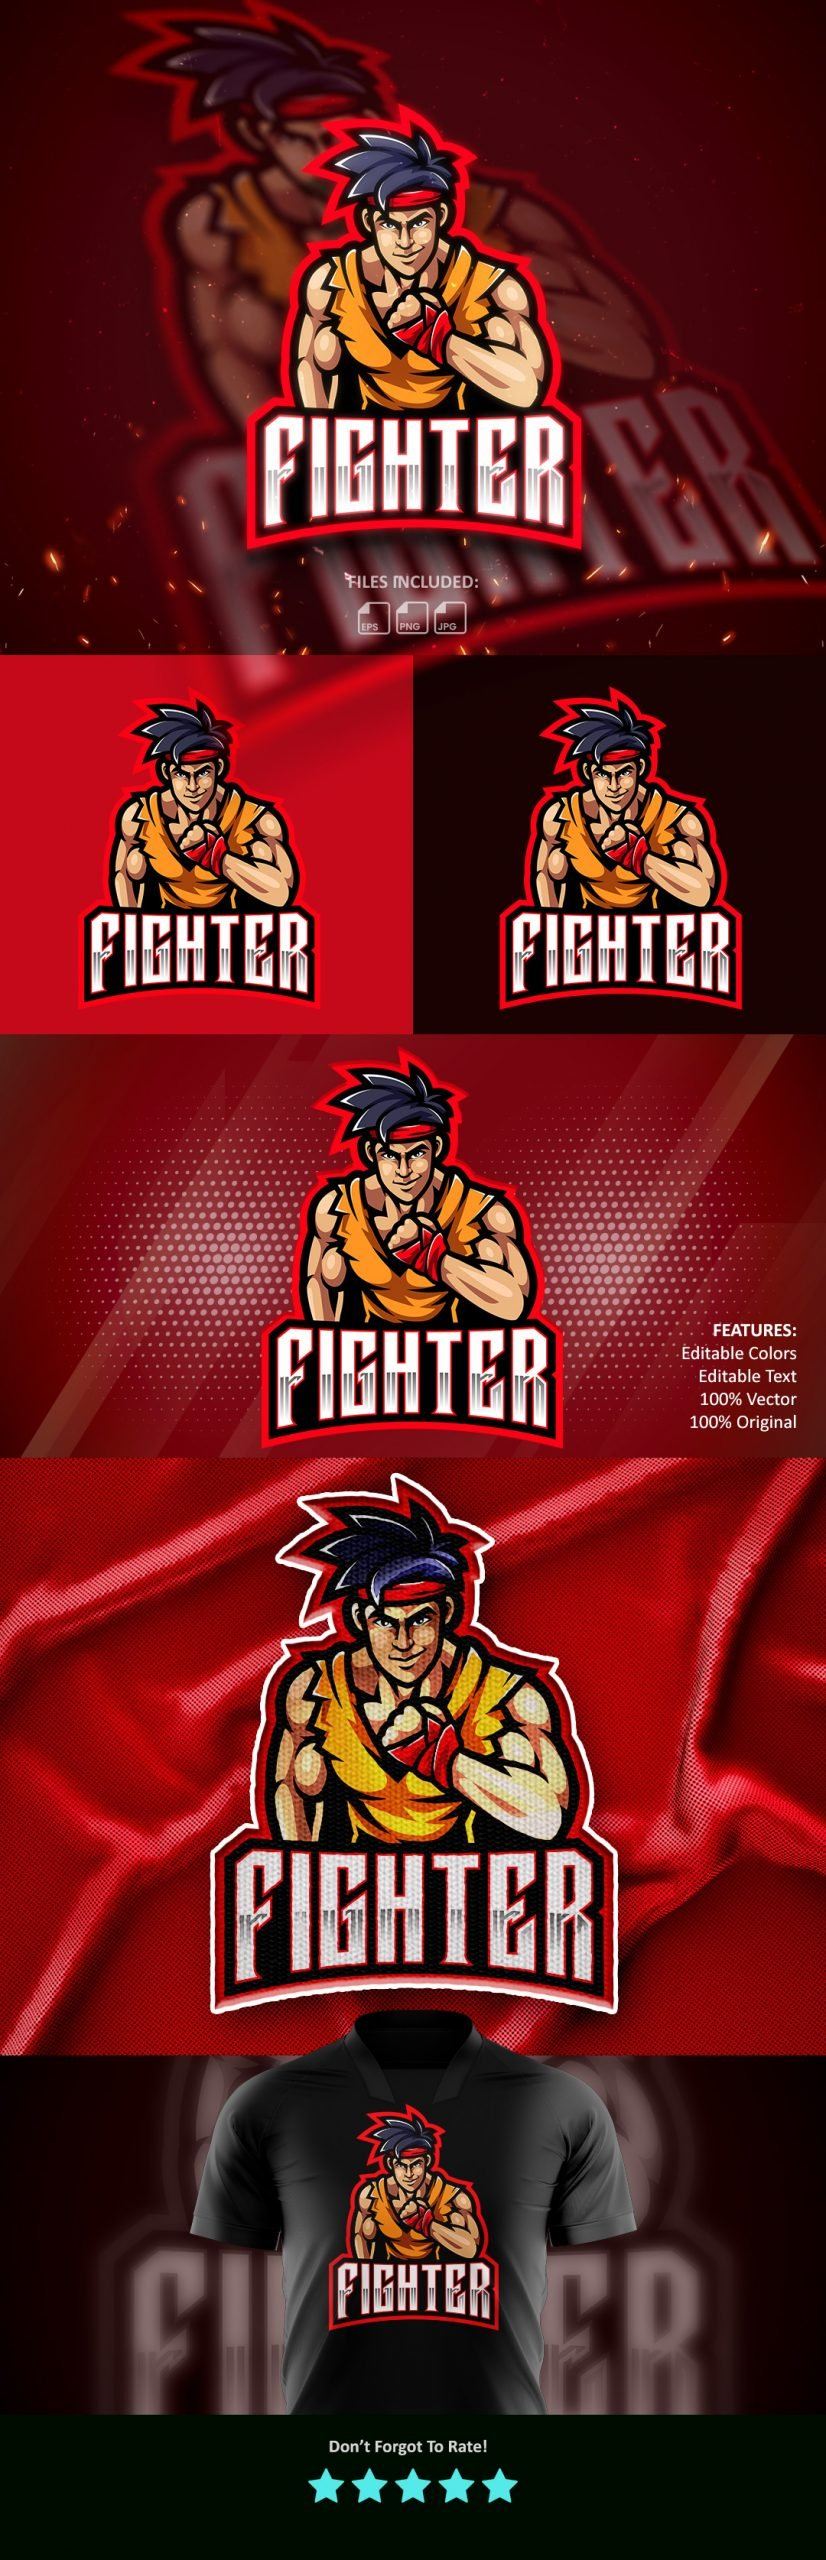 Fighters-Esports-Gaming-Clan-Mascot-Logo-Free-Download